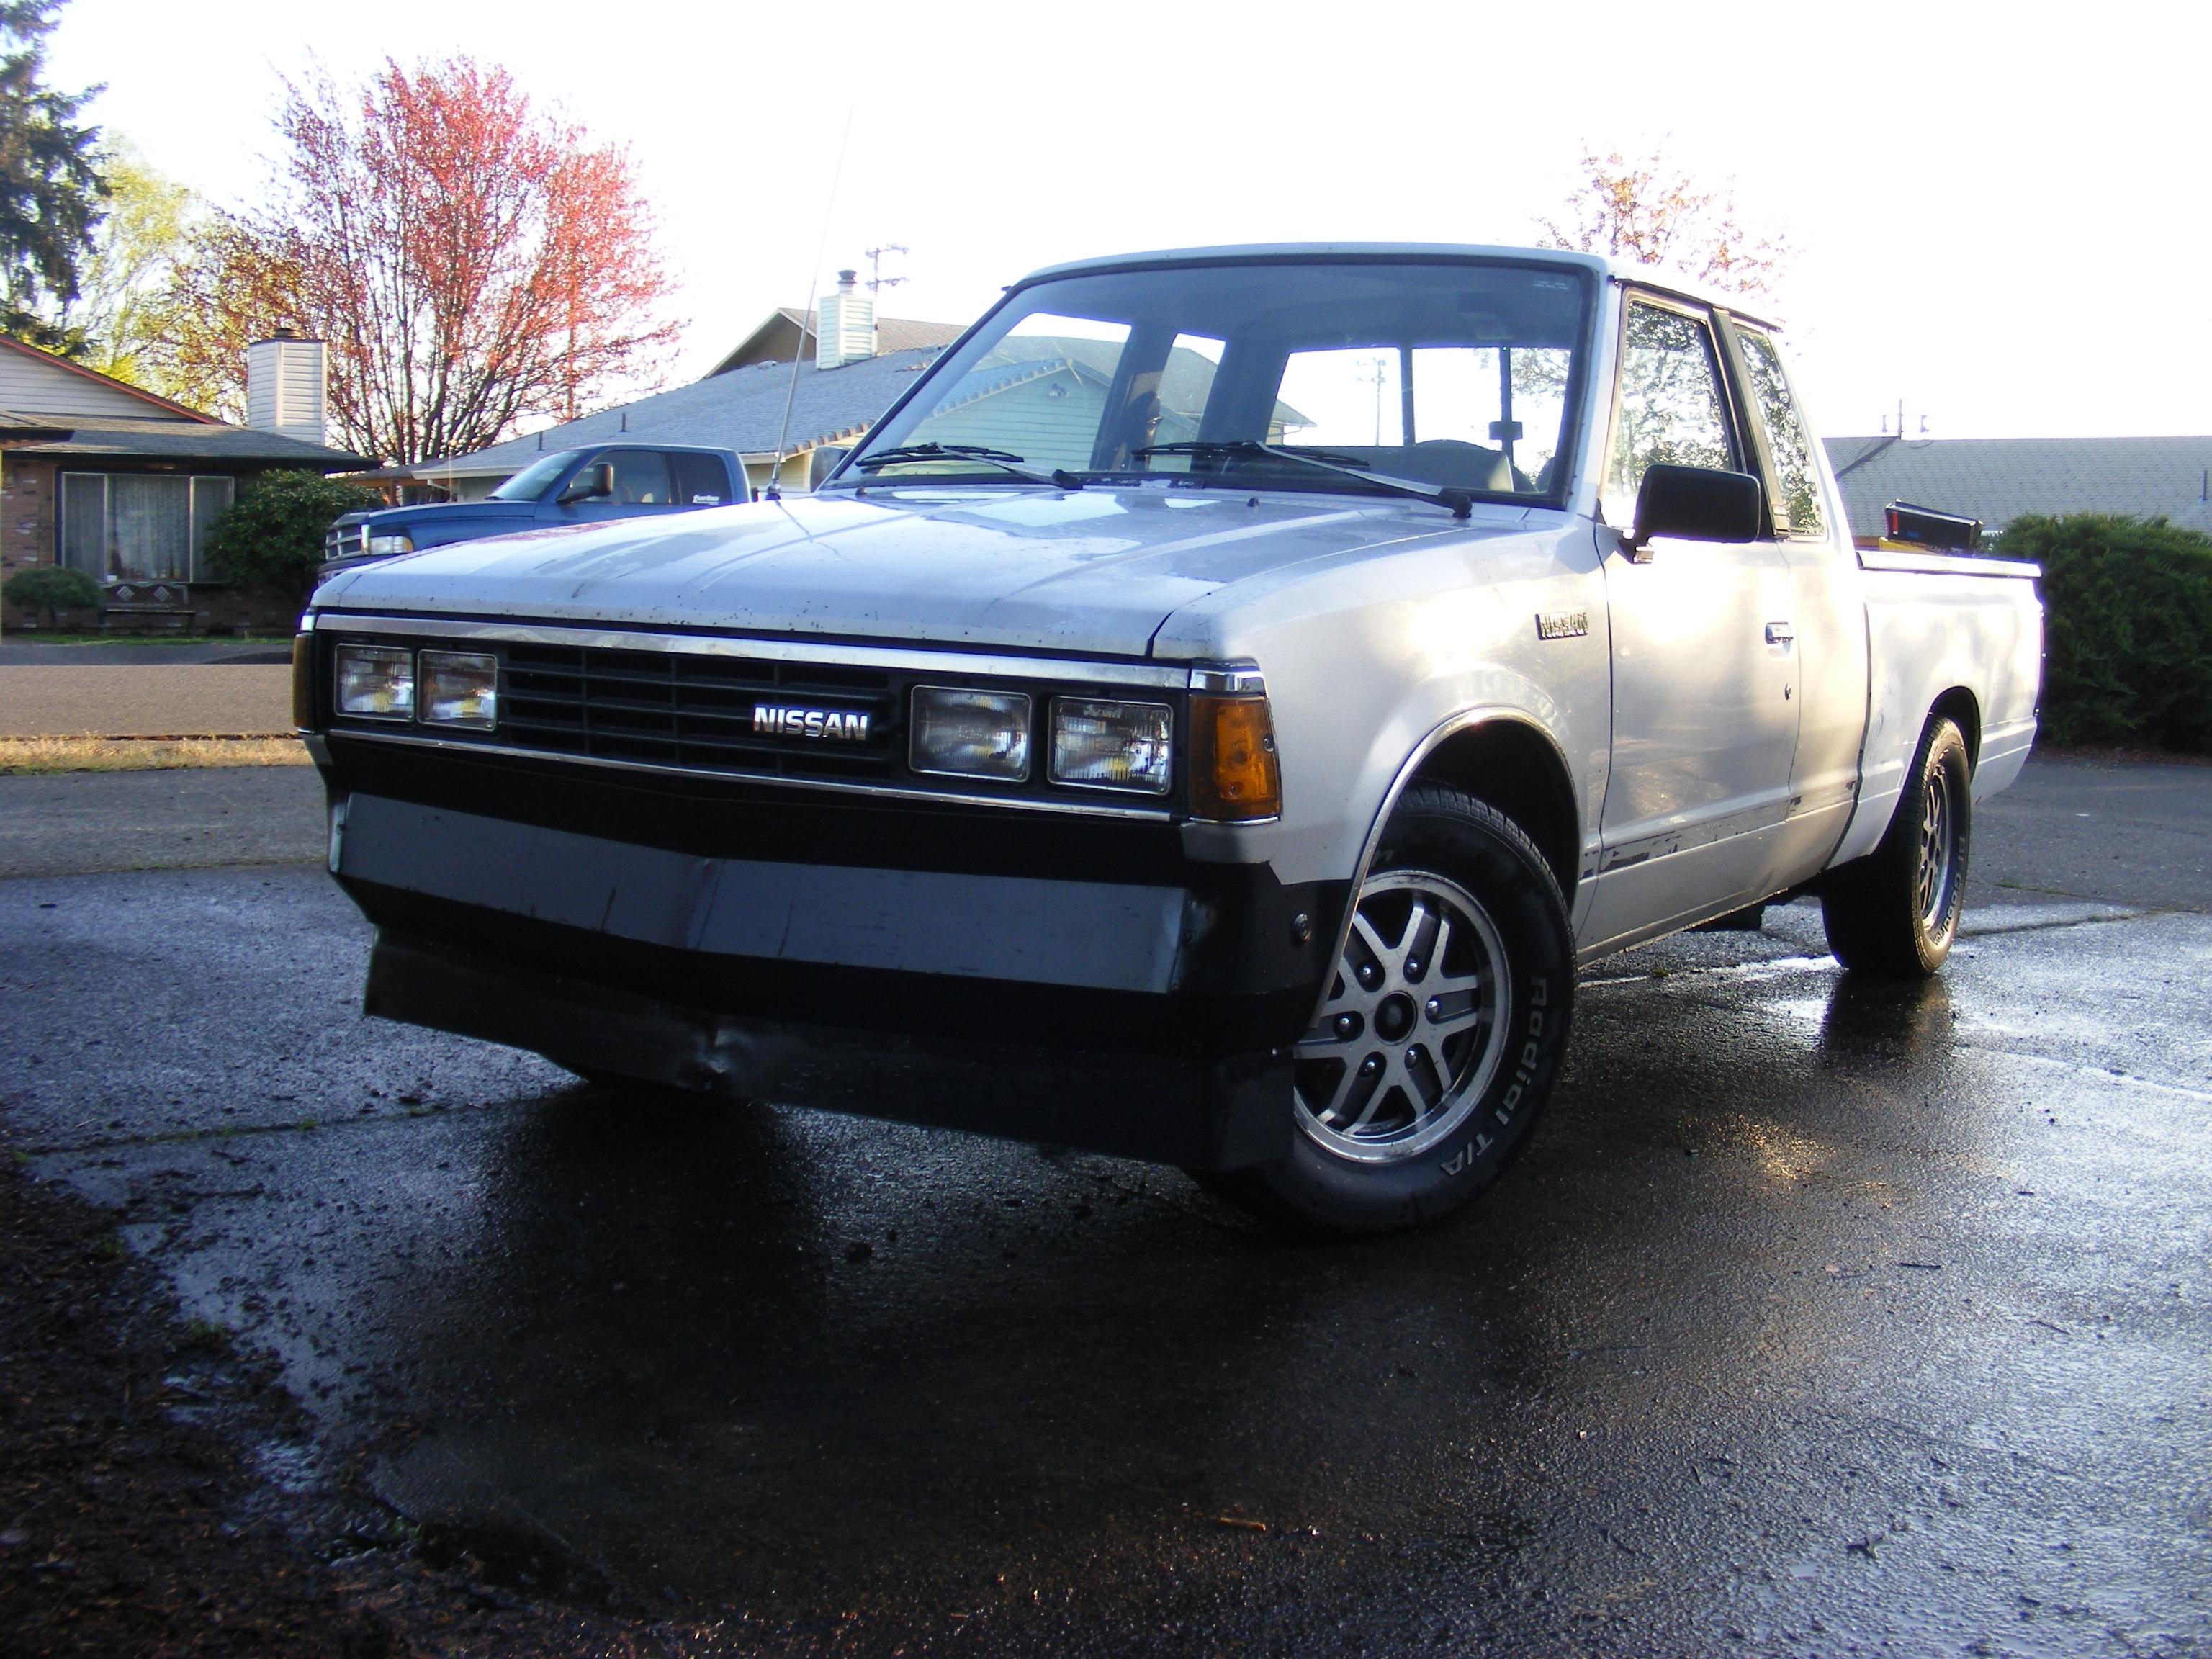 sinner720st 1985 nissan 720 pick-up specs, photos, modification